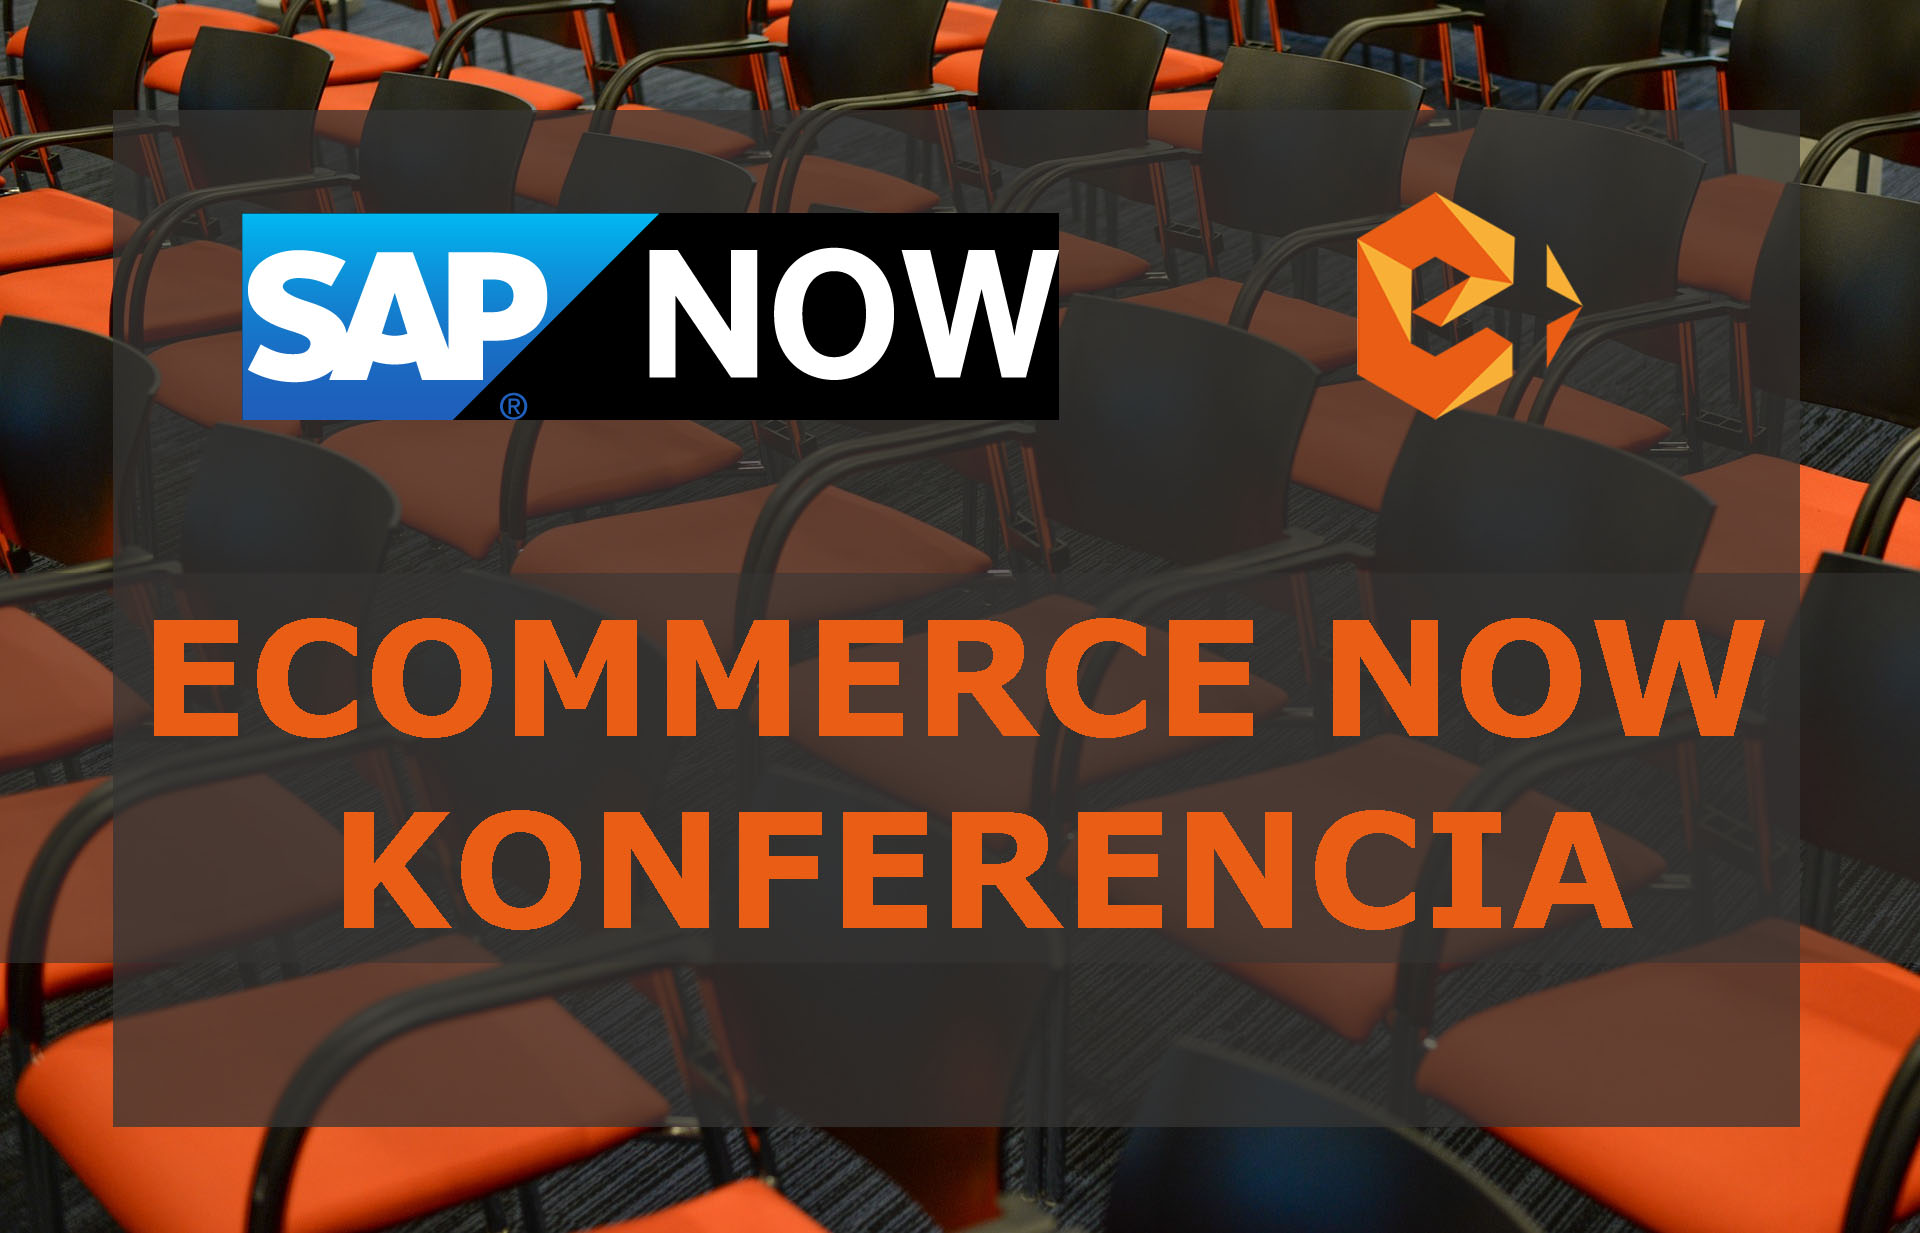 Ecommerce Now konferencia